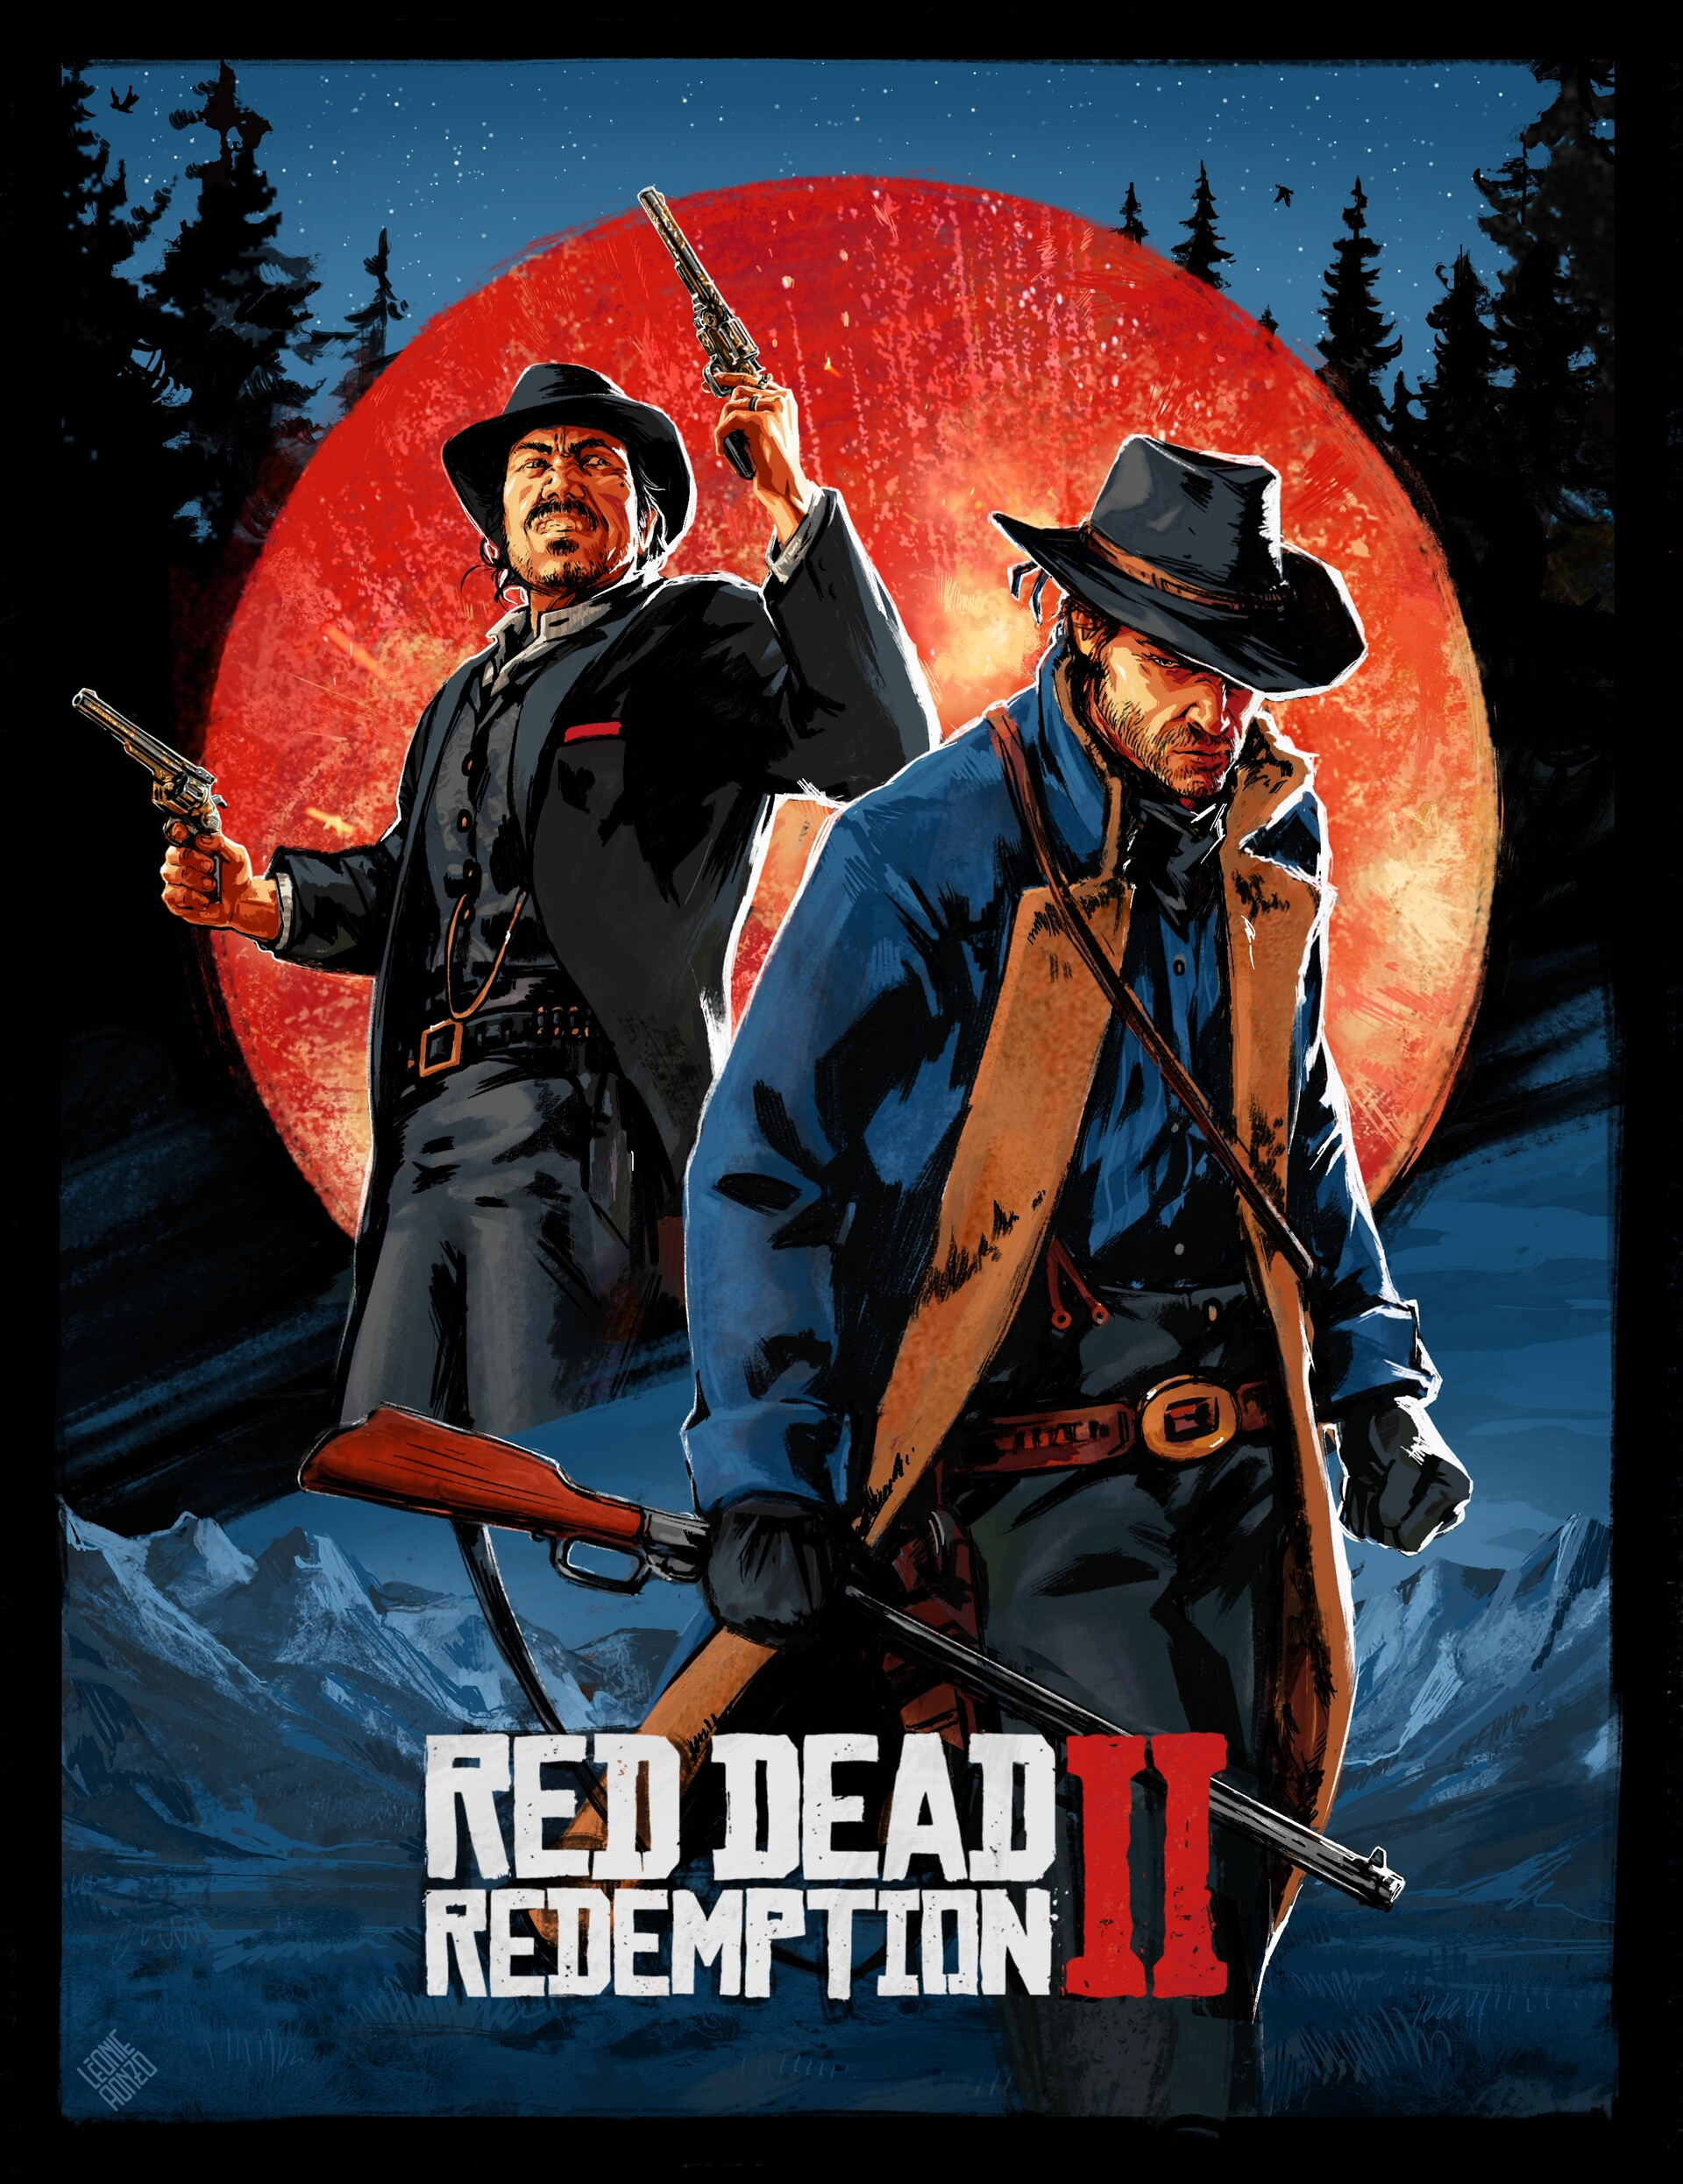 red dead redemption posters and fanart